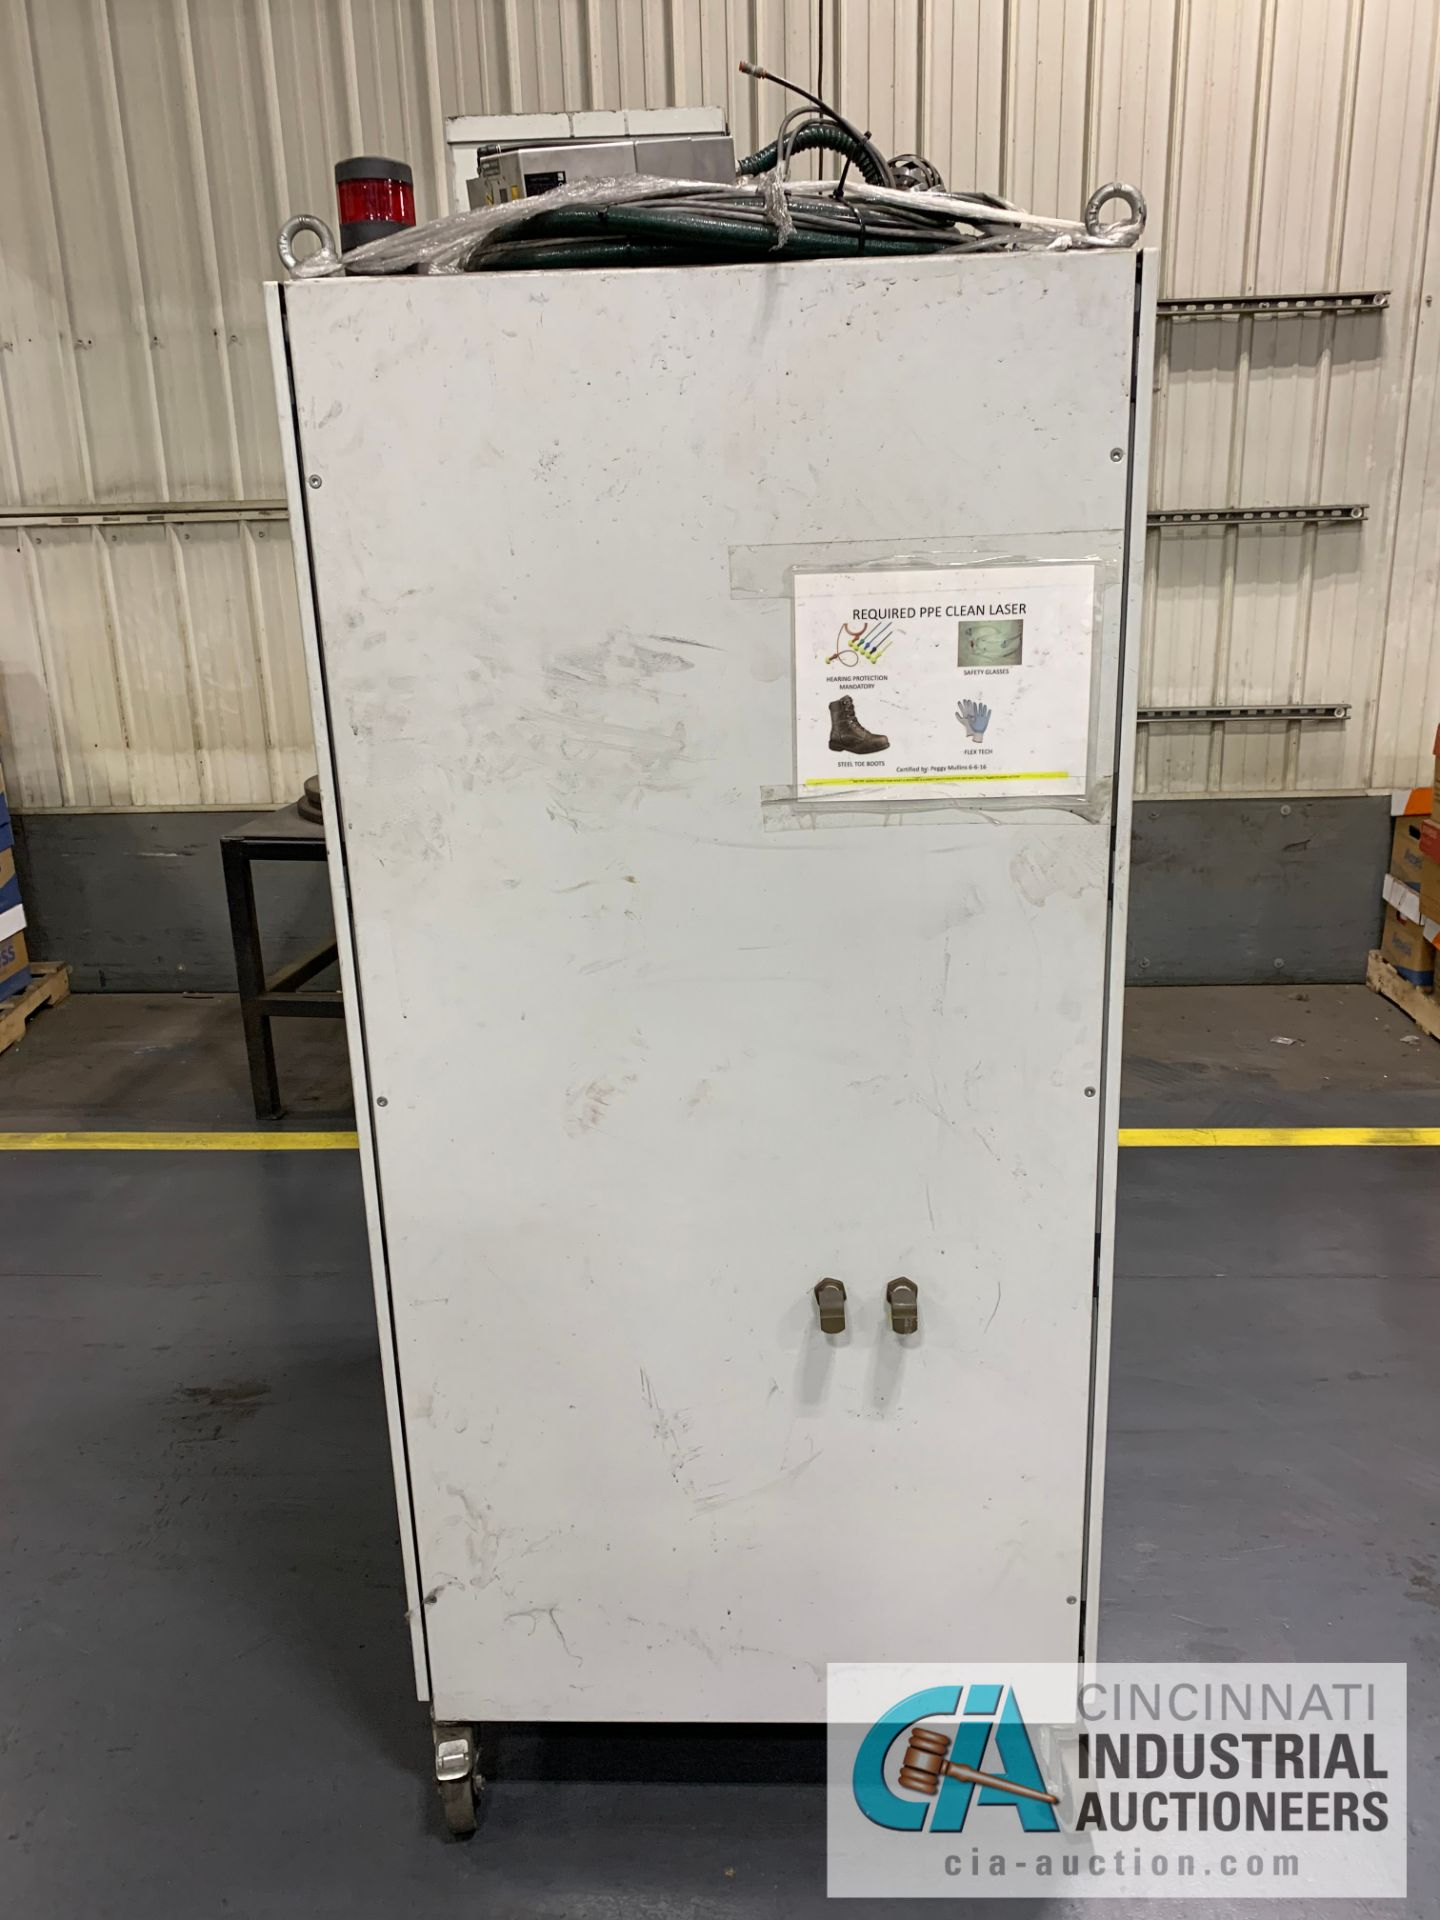 Lot 6 - 150 WATT CLEANLASER CL-150 CNC COMPACT CLEANING LASER; S/N L15-1600 (2015) SIEMENS SIMATIC PANEL